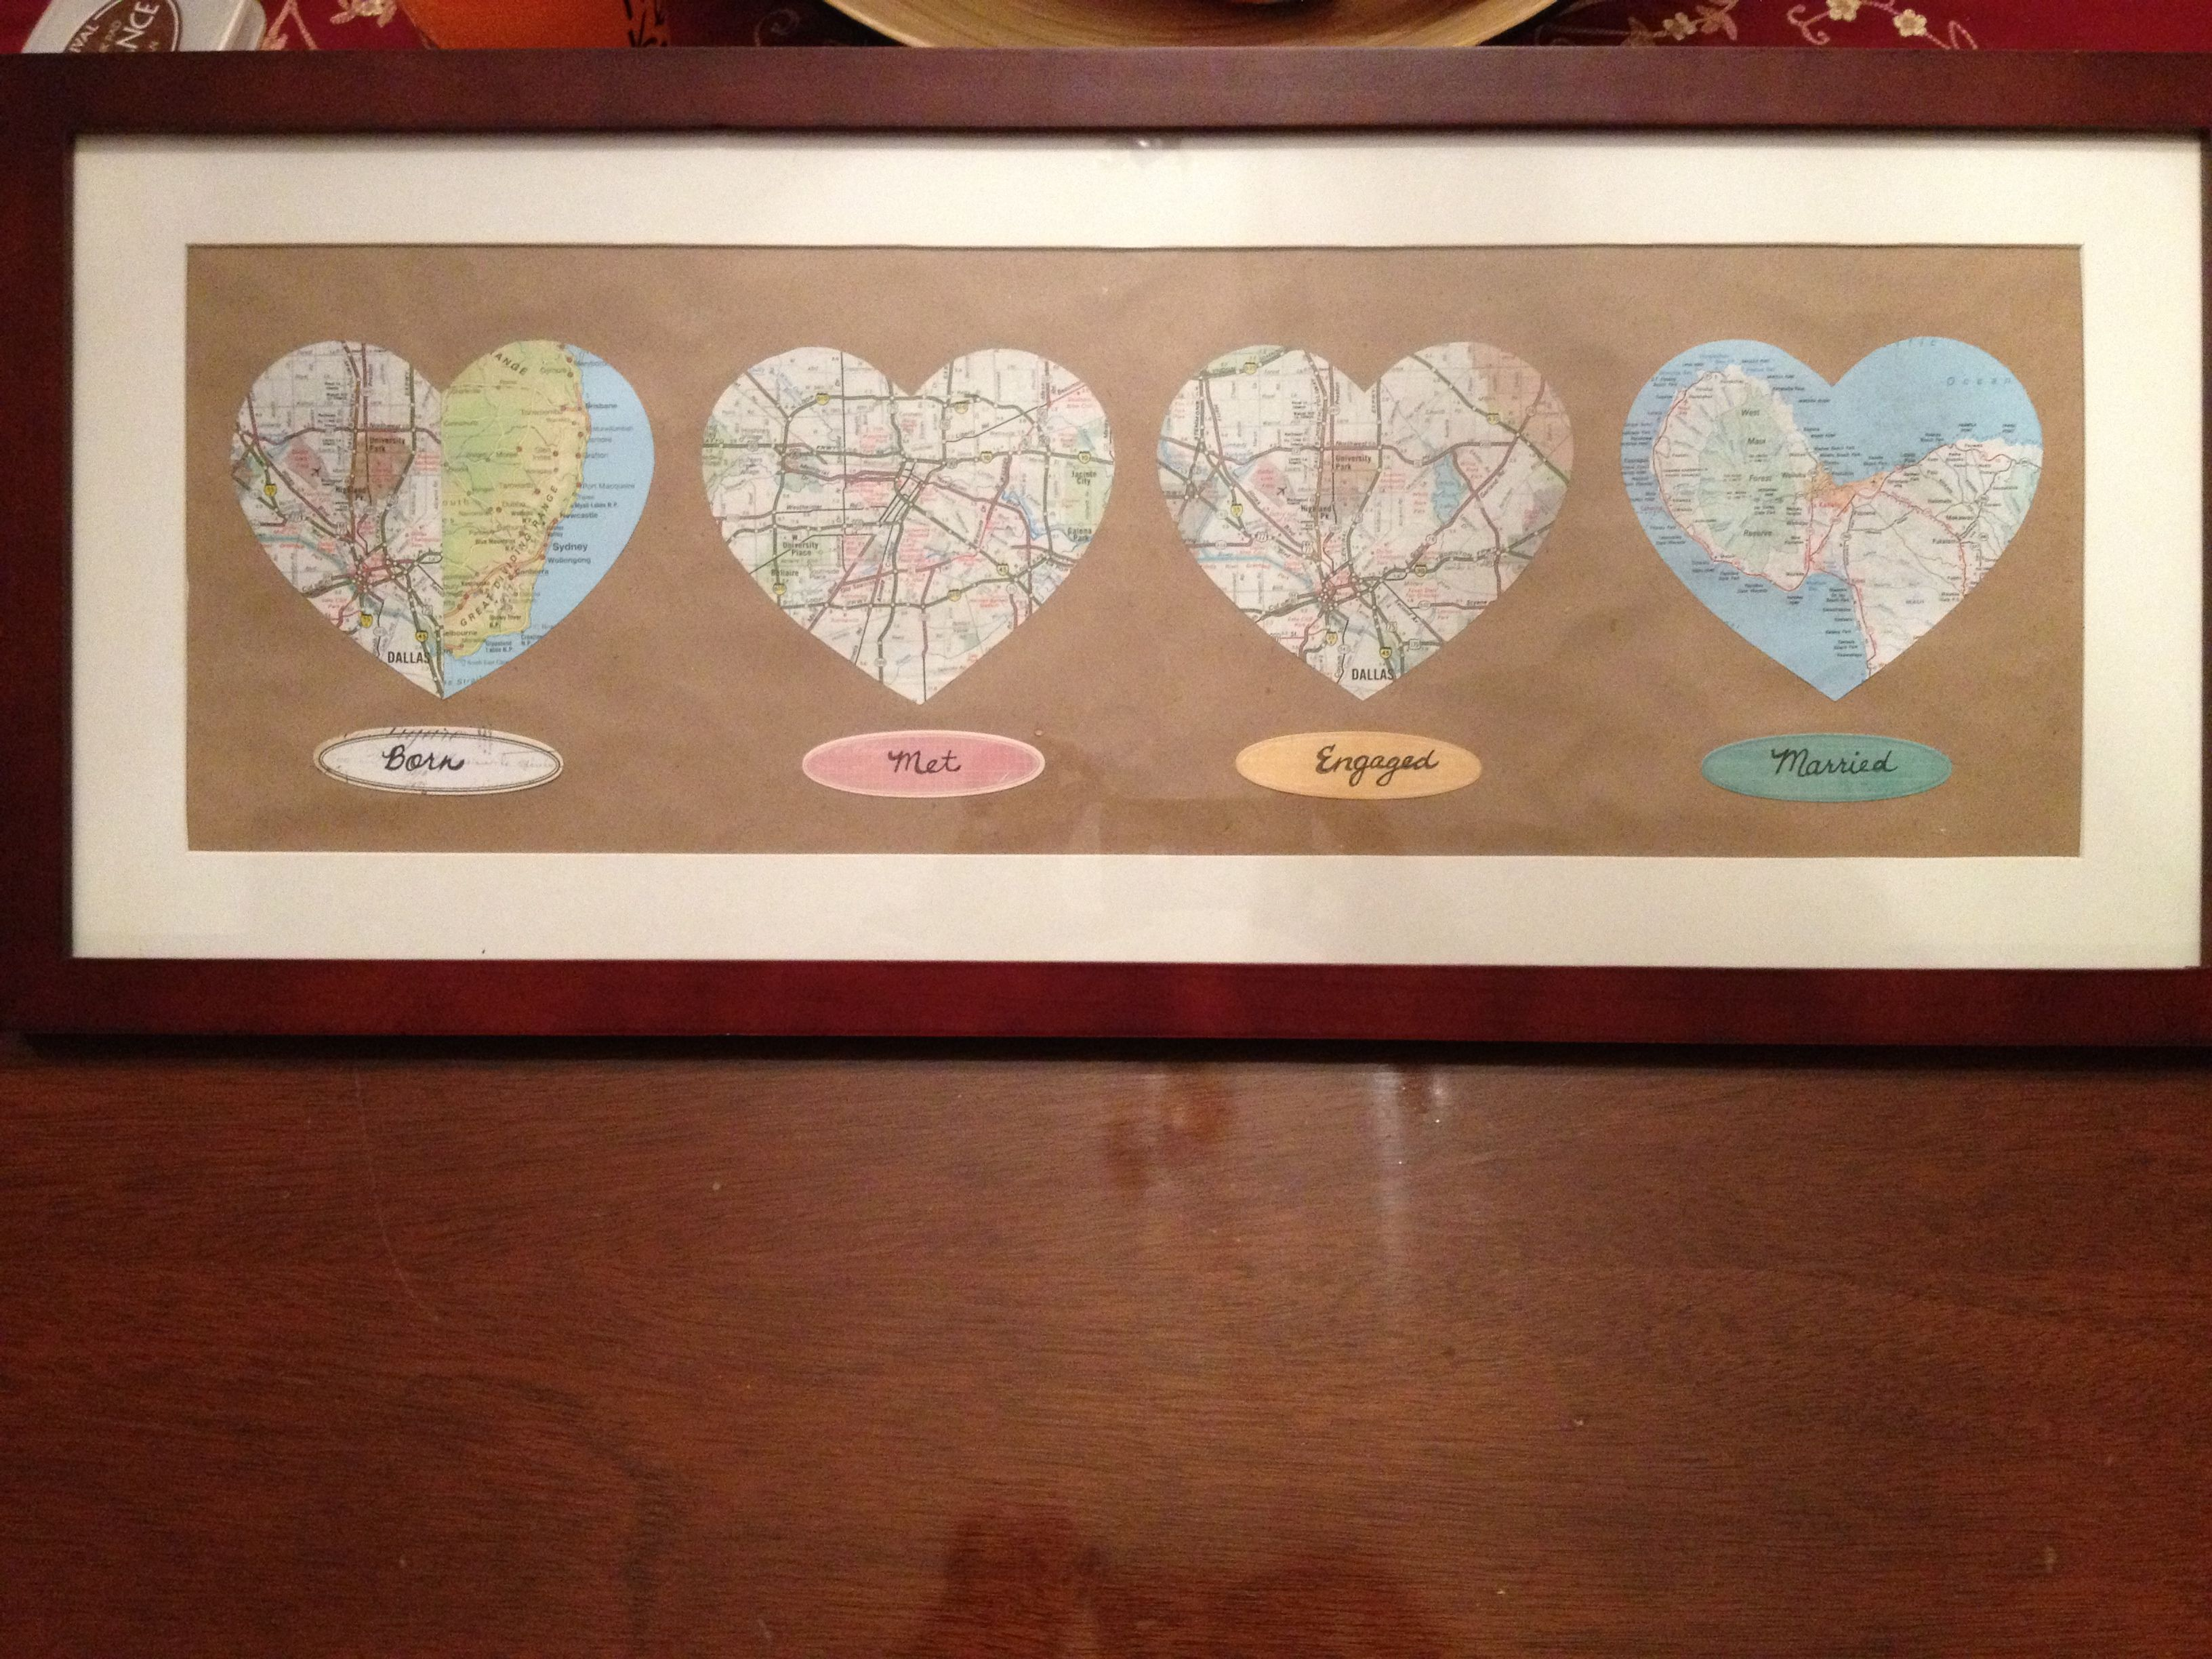 Homemade Wedding Gift Ideas For Bride And Groom: Born, Met, Engaged, Married Map Cutouts For The Bride